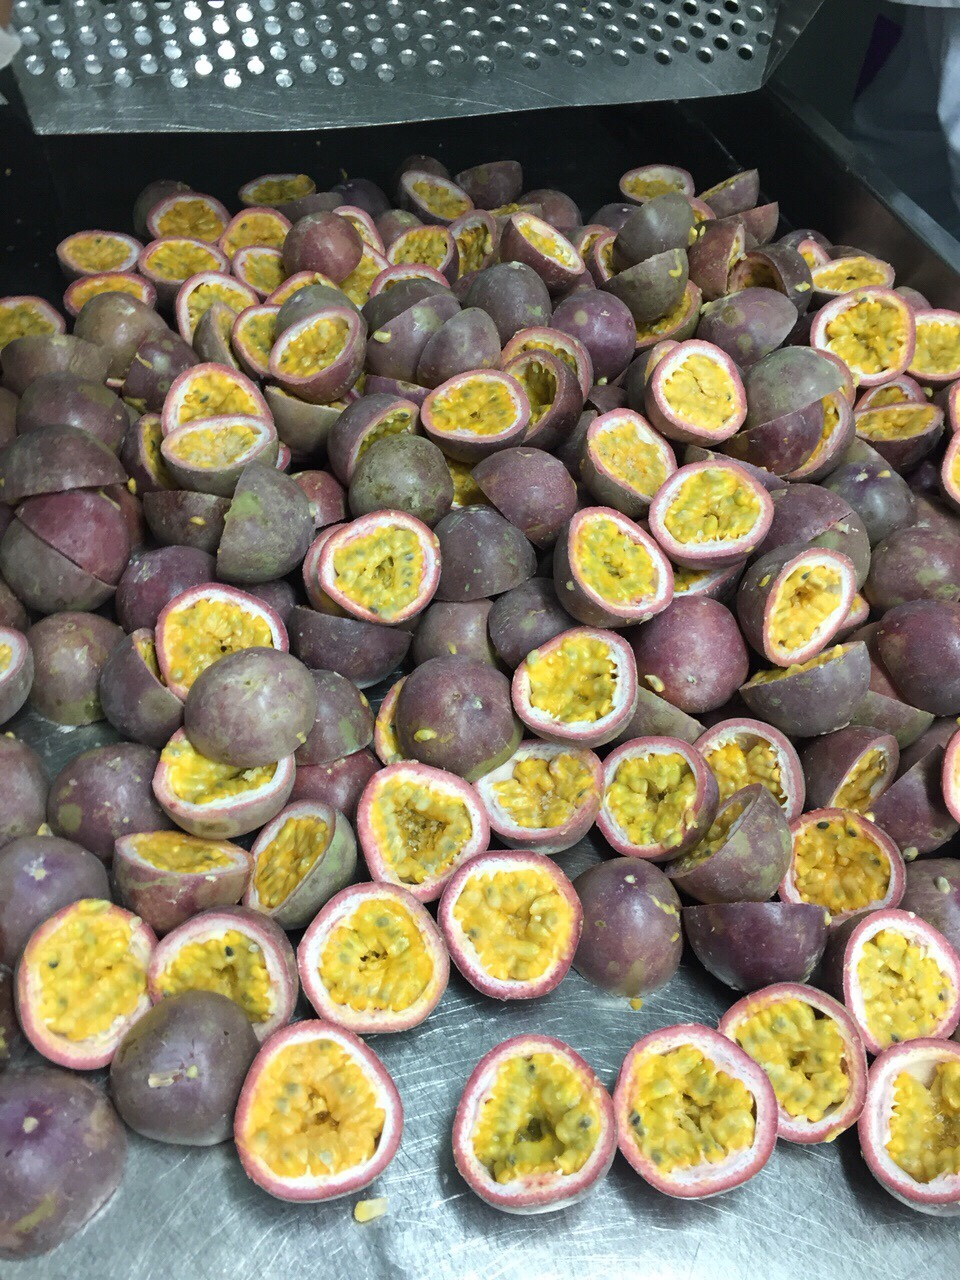 IQF passion fruit half cut